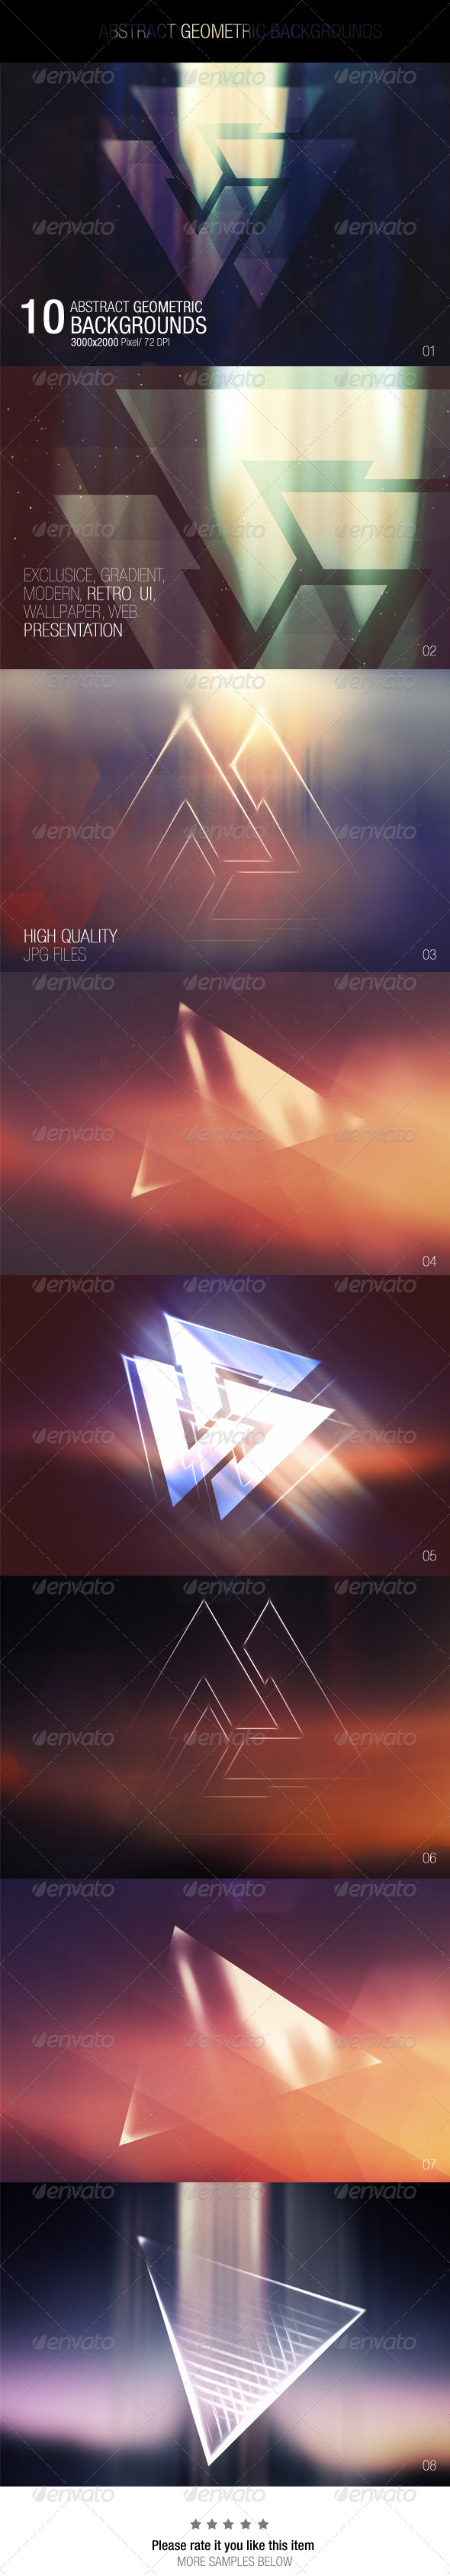 GraphicRiver Abstract Geometric Backgrounds 7667711